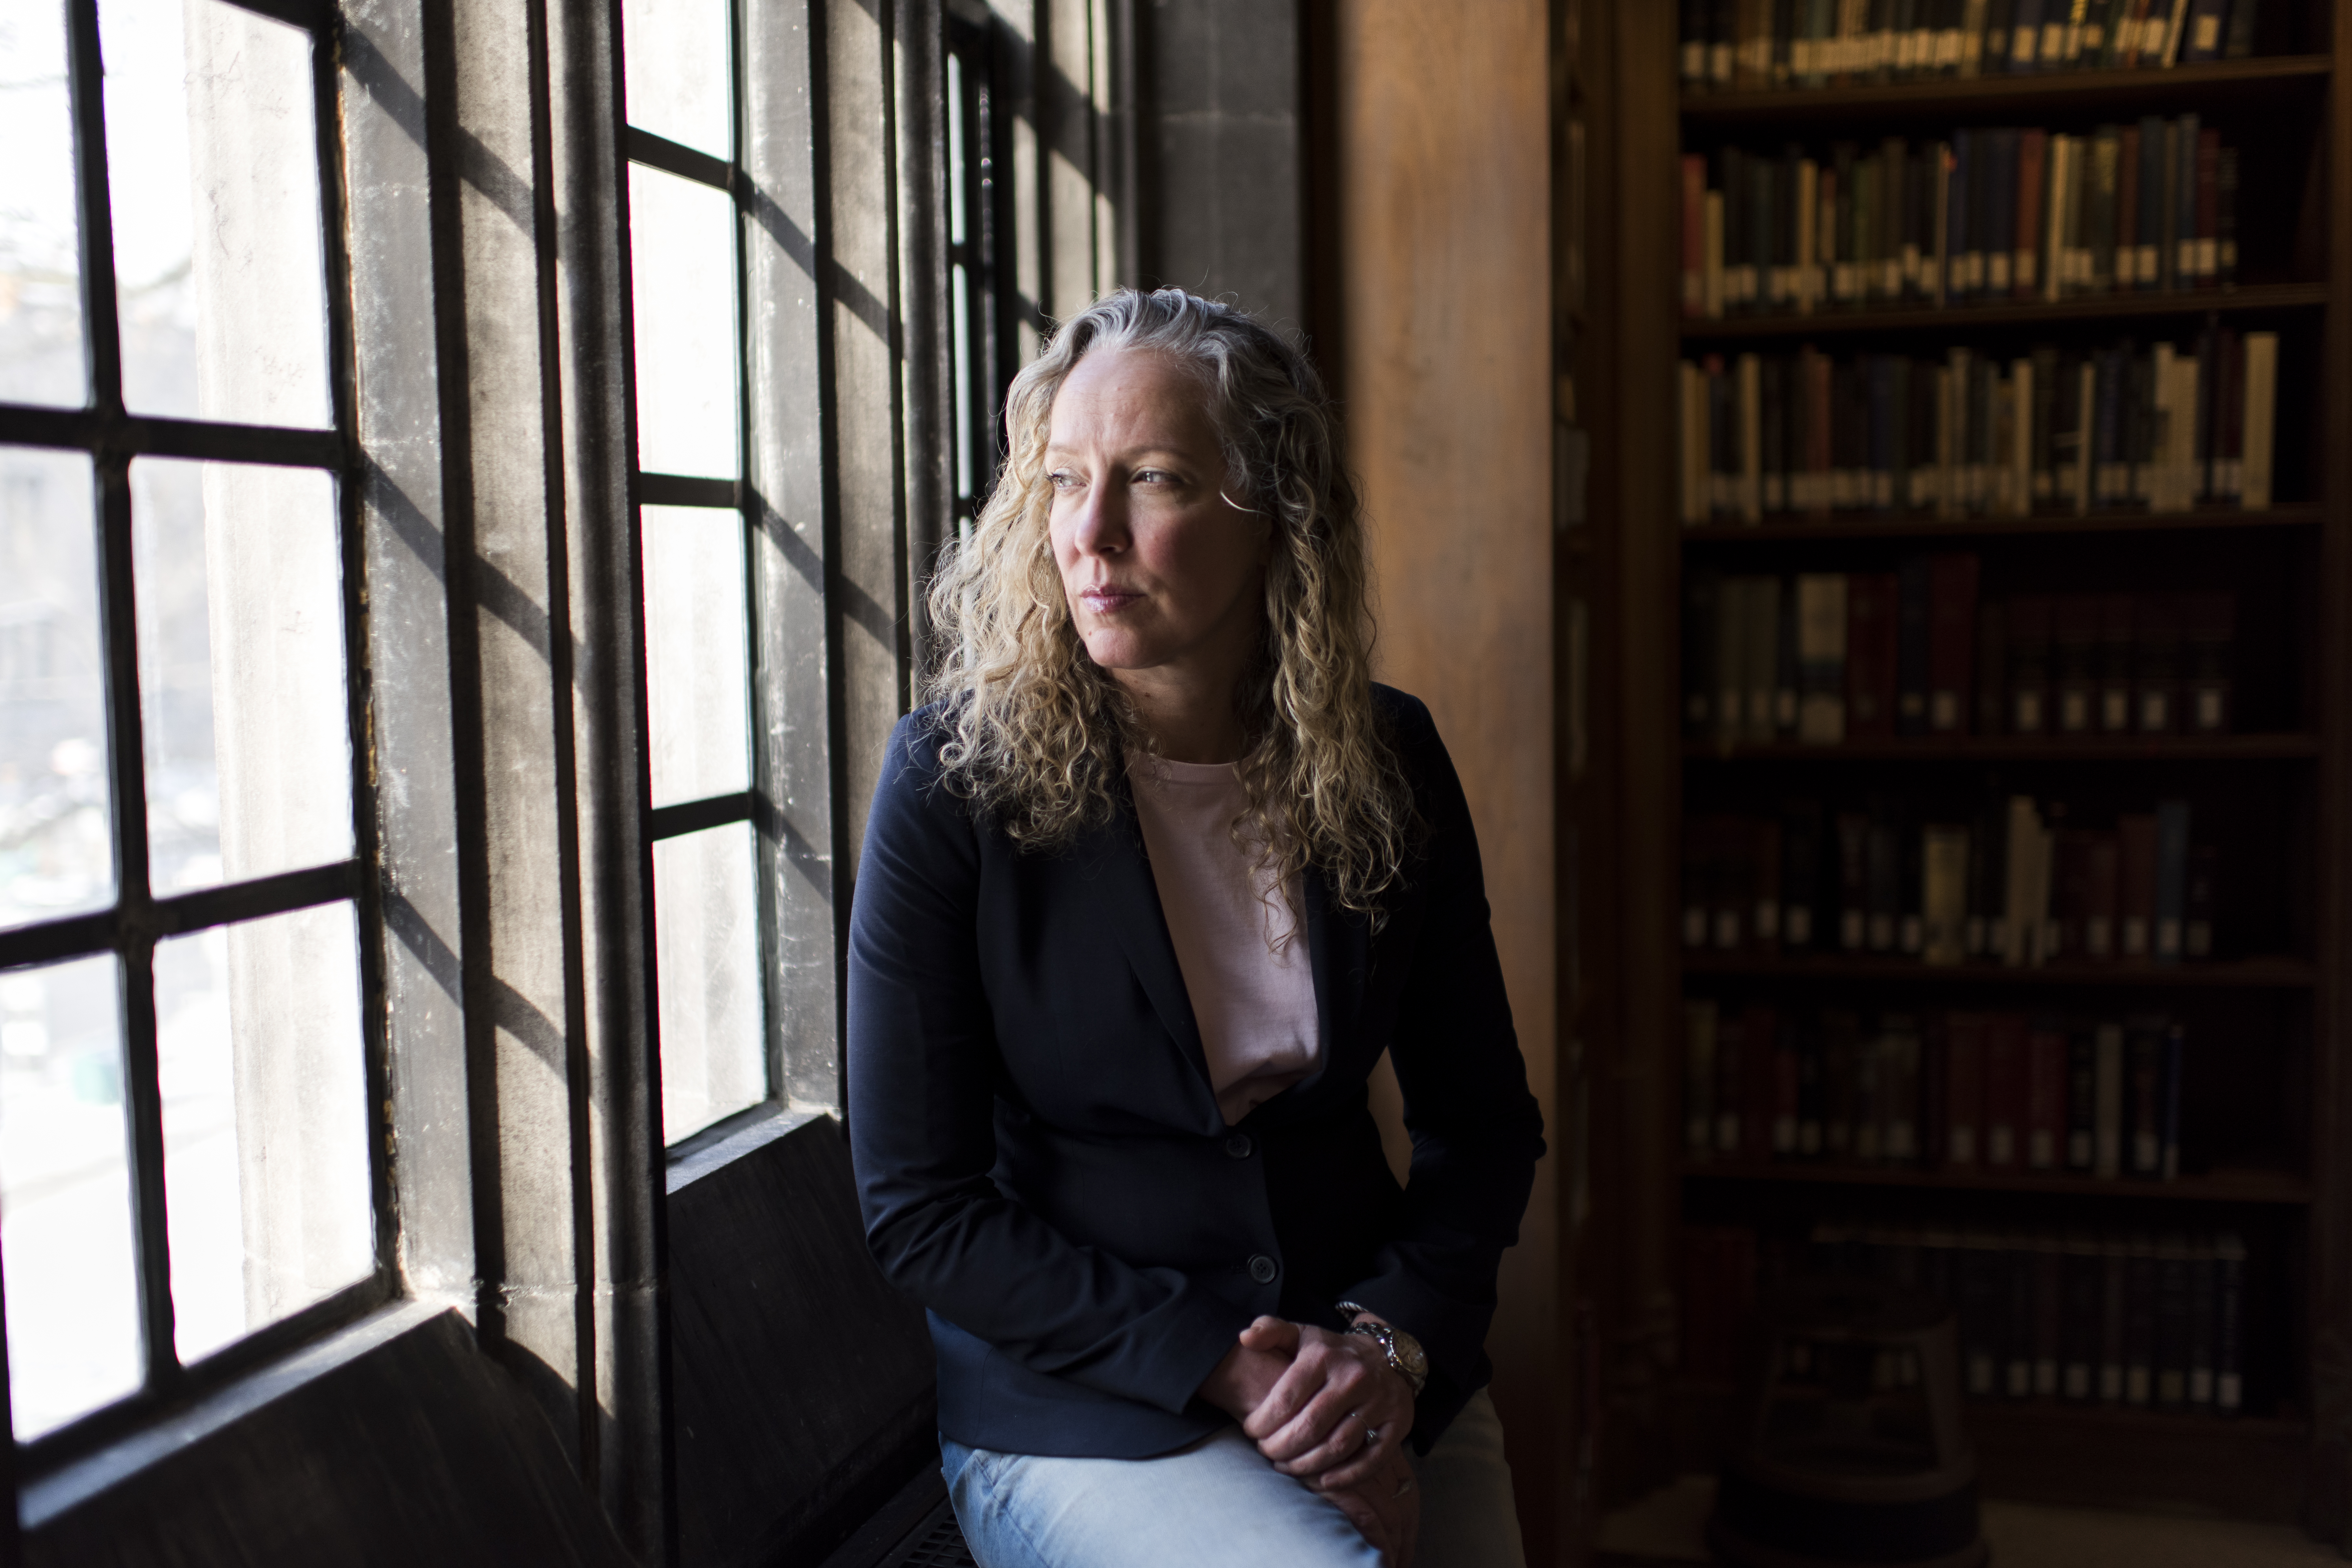 Rebecca Wittmann, UTM's chair of Historical Studies, poses for a portrait at Emmanuel College Library on the University of Toronto Campus in Toronto on Friday January 25, 2019.